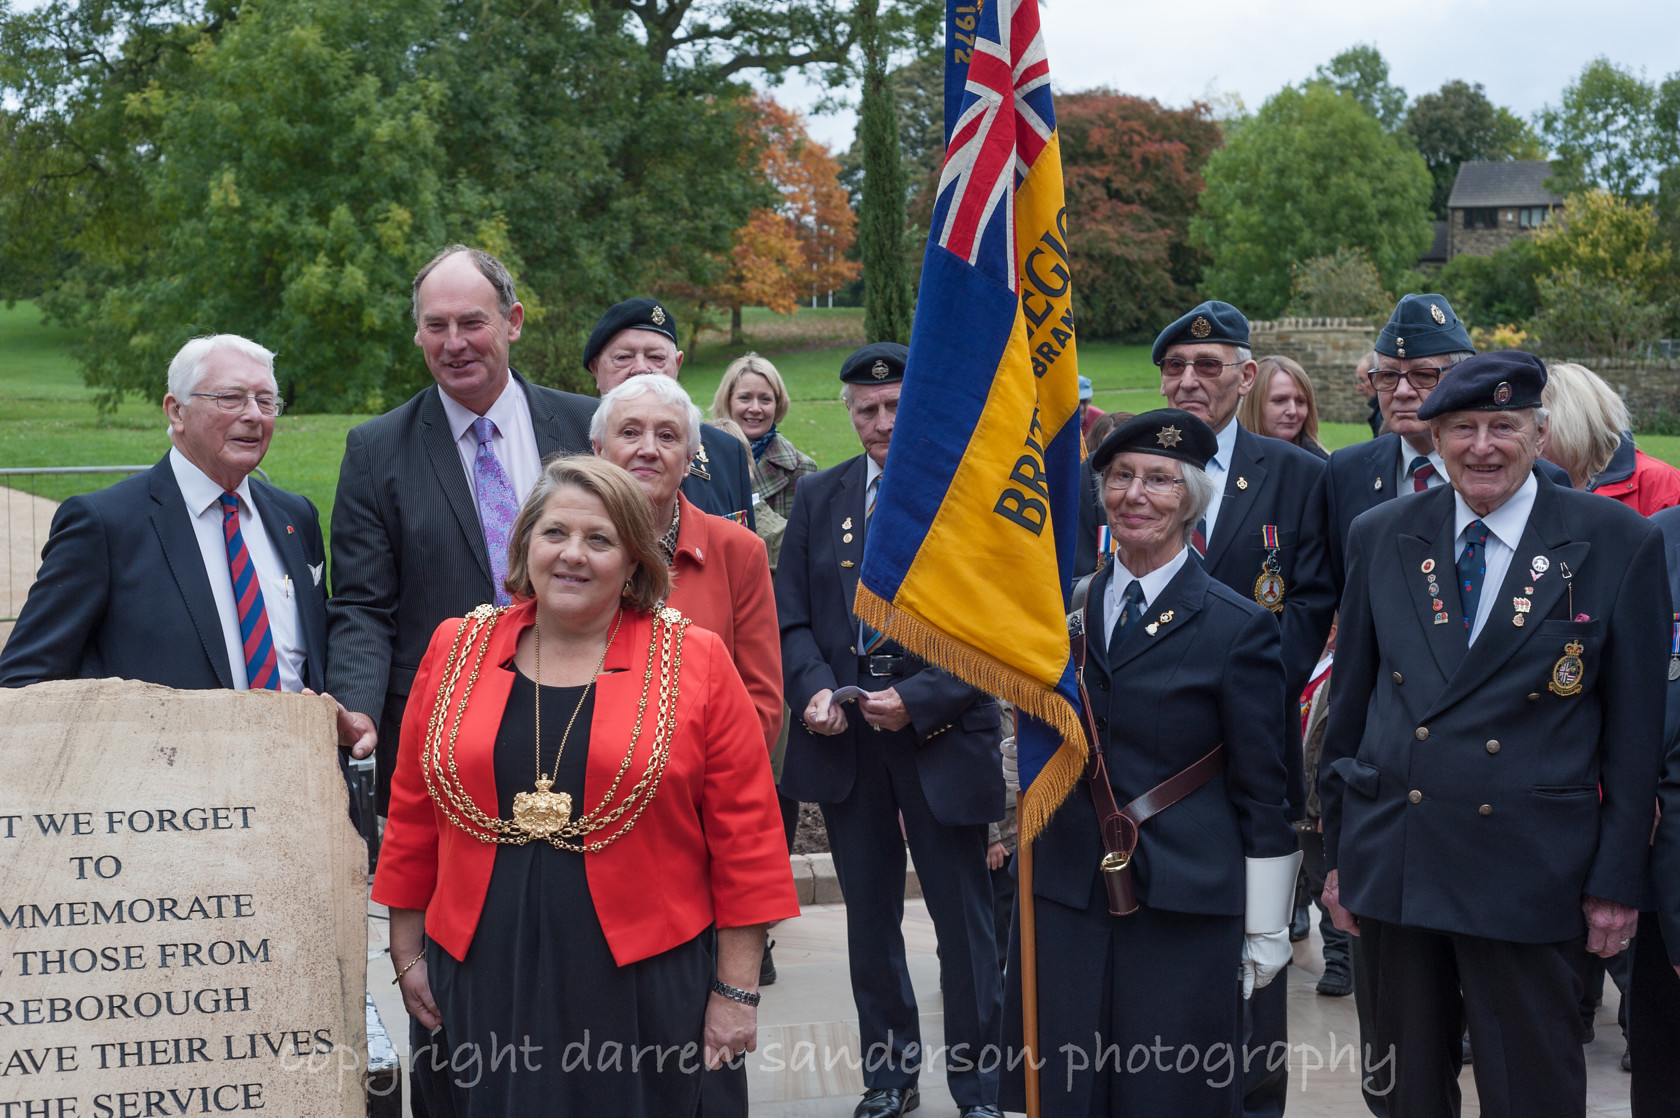 war memorial opening, nunroyd park picture 23 